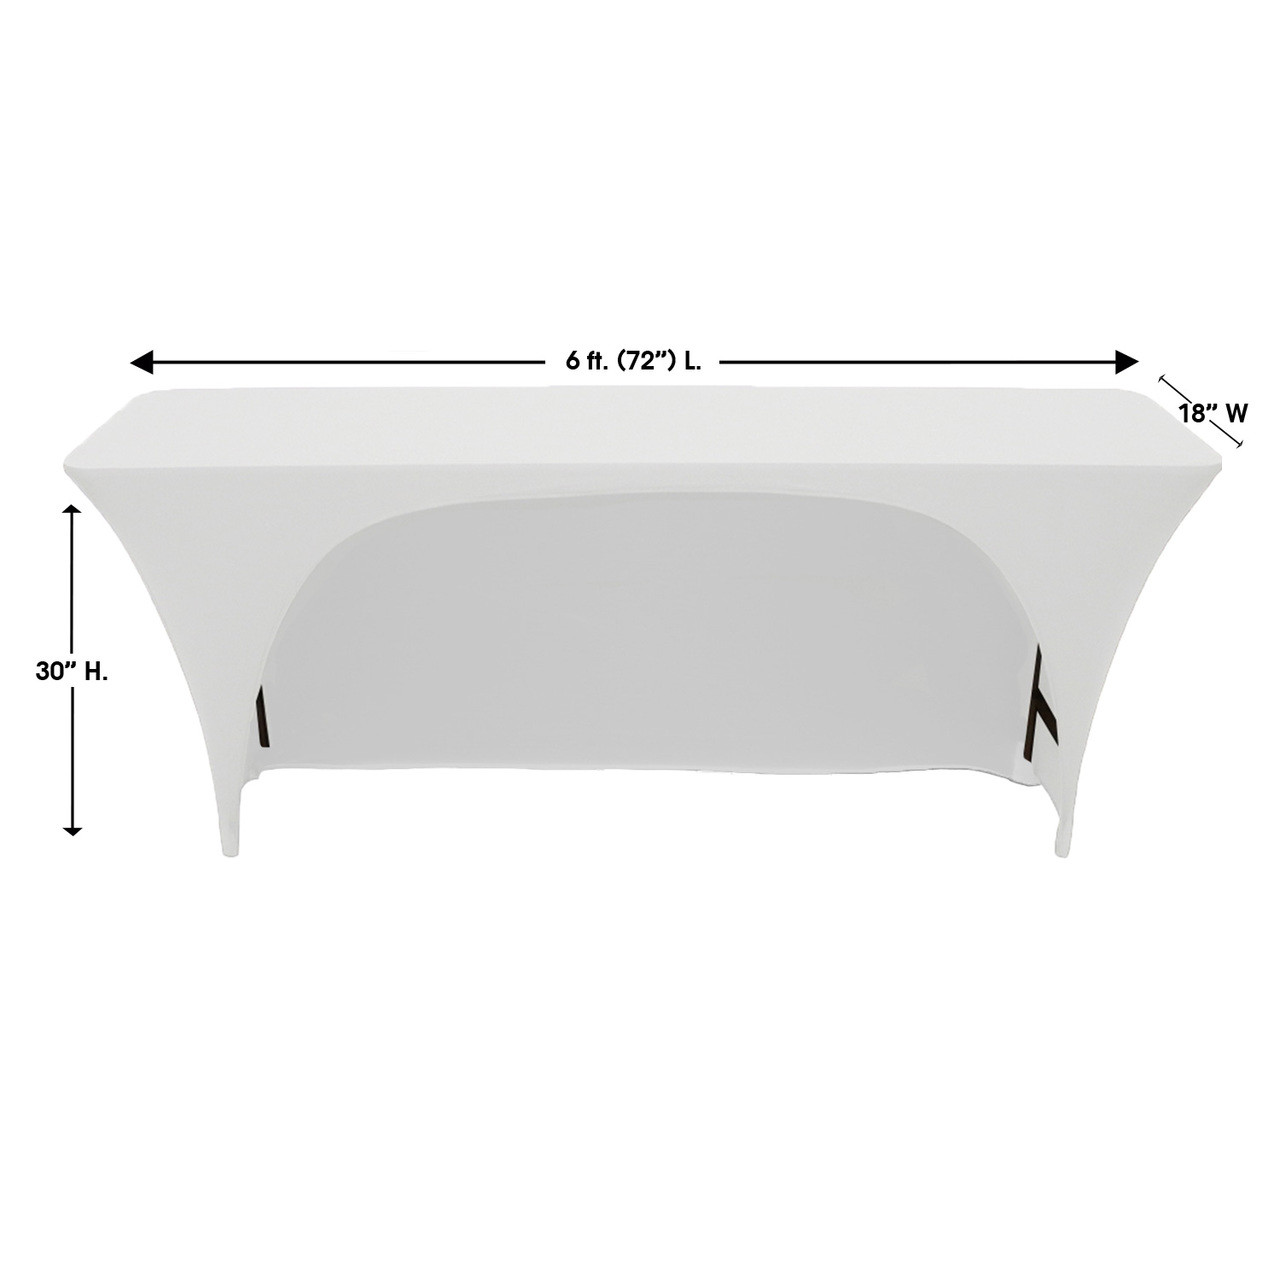 6Ft x 18 Inches Open Back Classroom Spandex Table Cover White  sc 1 st  Bridal Tablecloths & 6Ft x 18 Inches Open Back Classroom Spandex Table Covers White